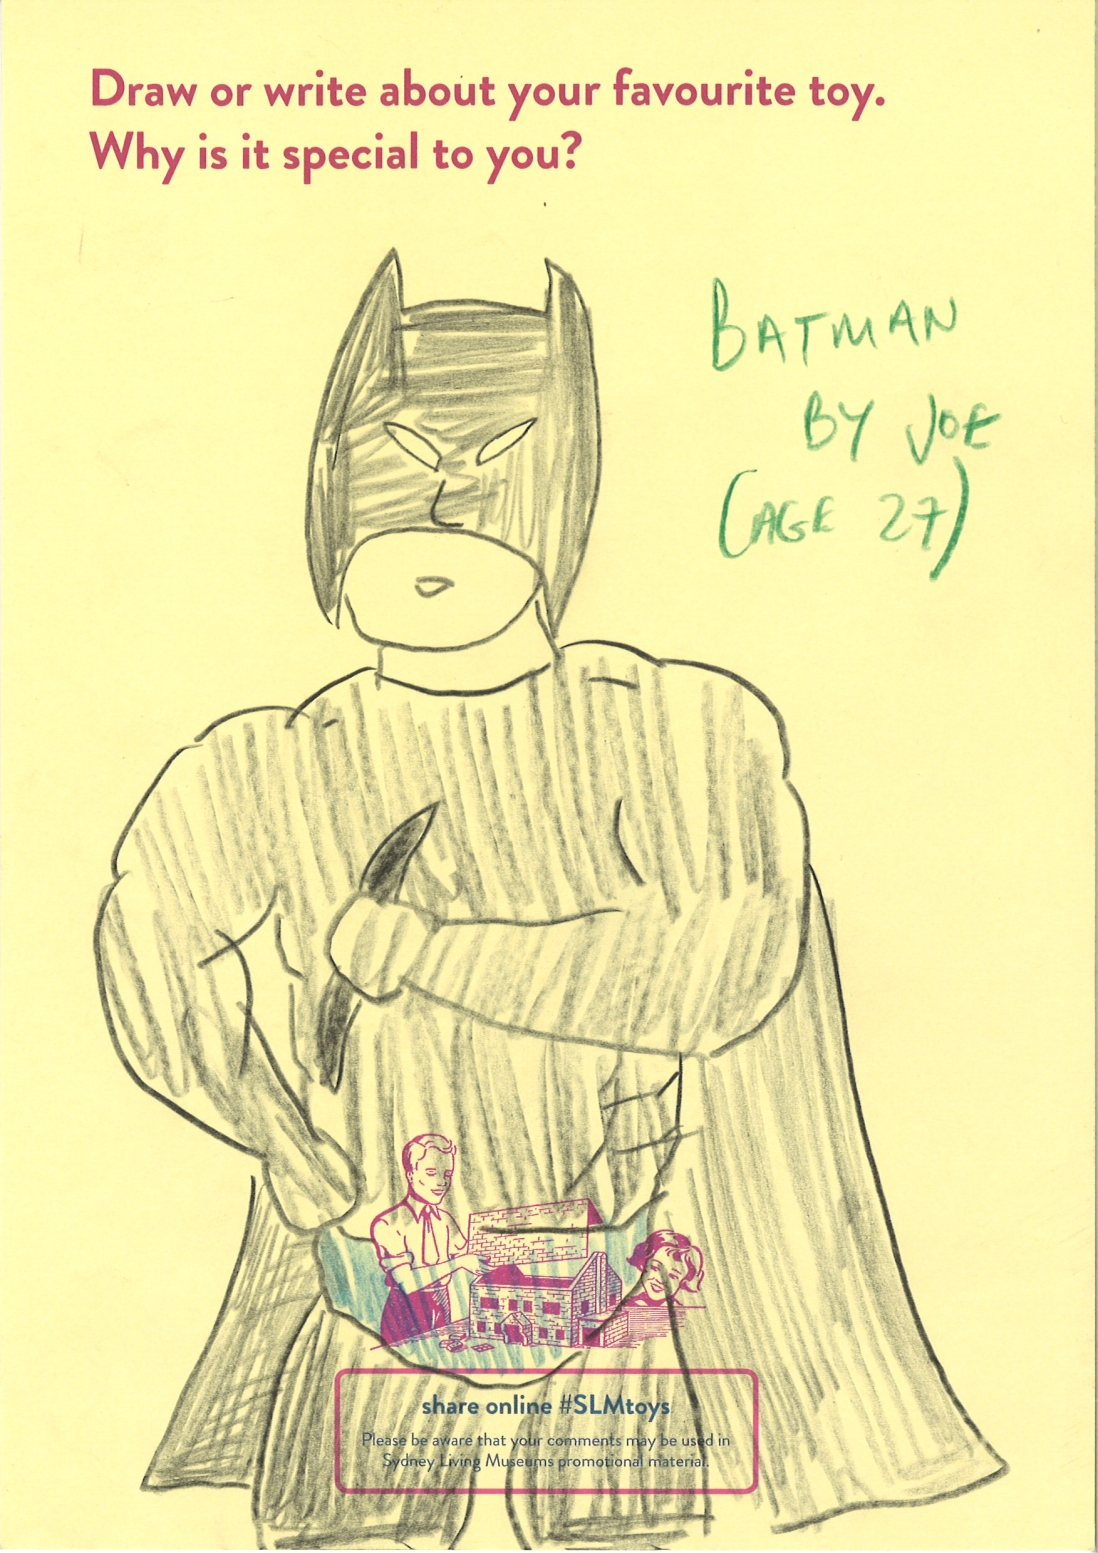 An adults drawing of Batman